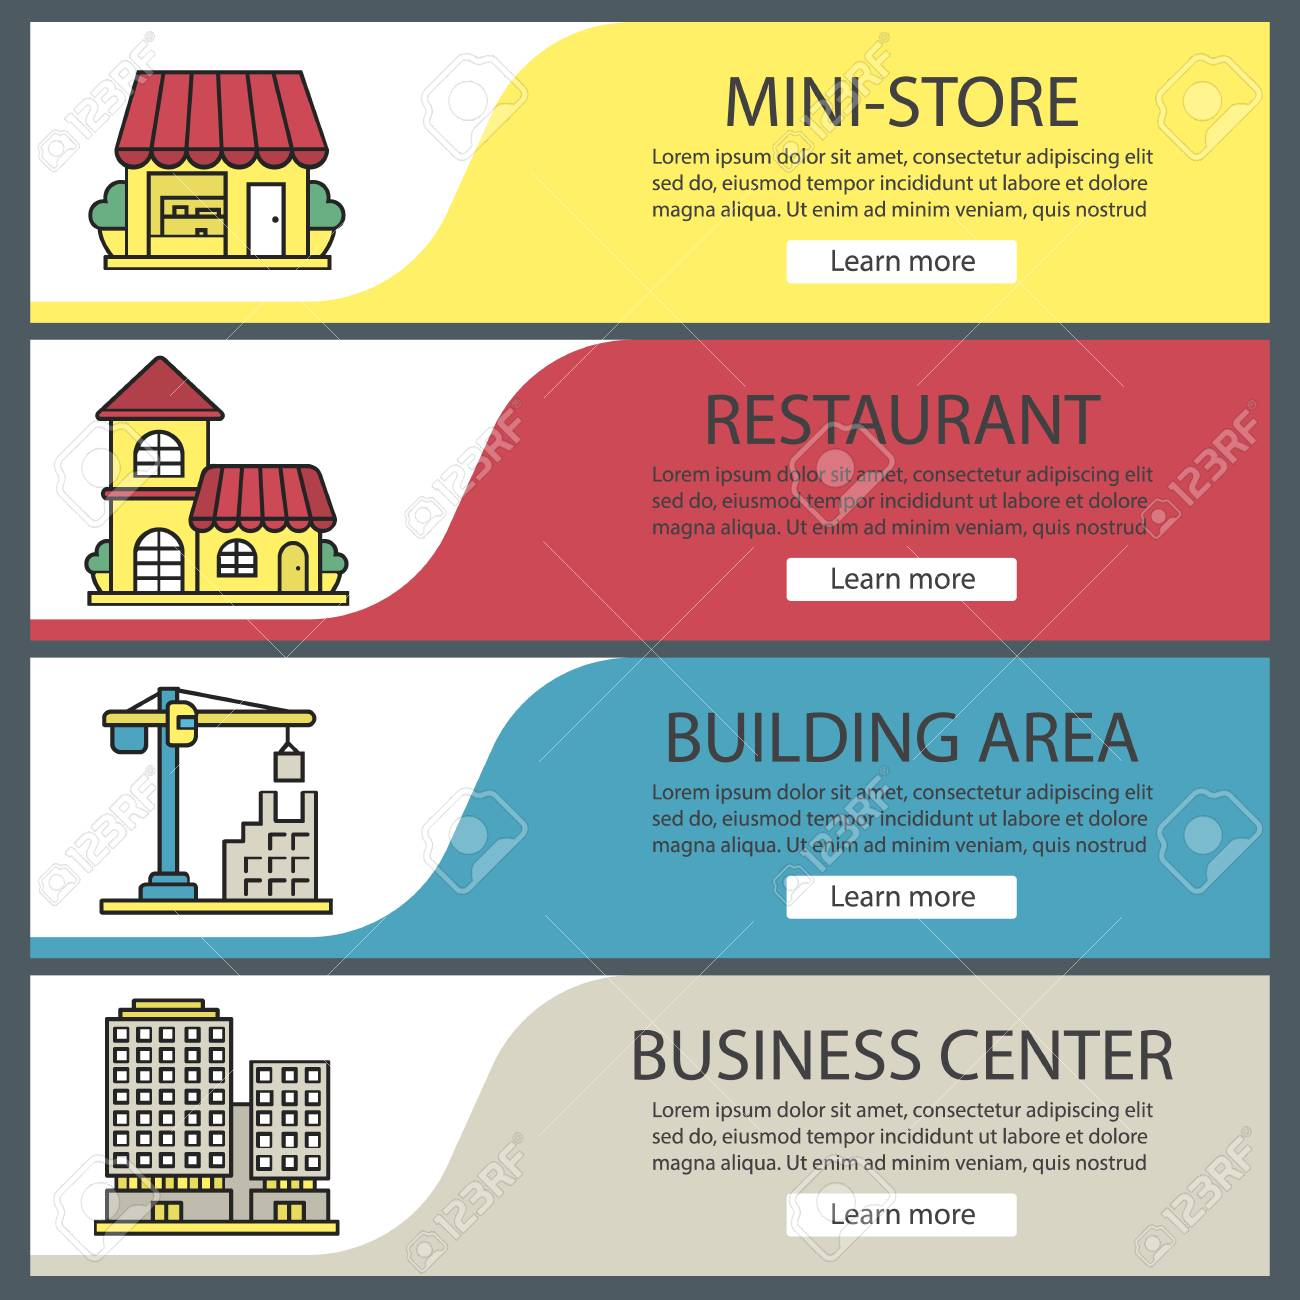 city buildings web banner templates set shop restaurant tower